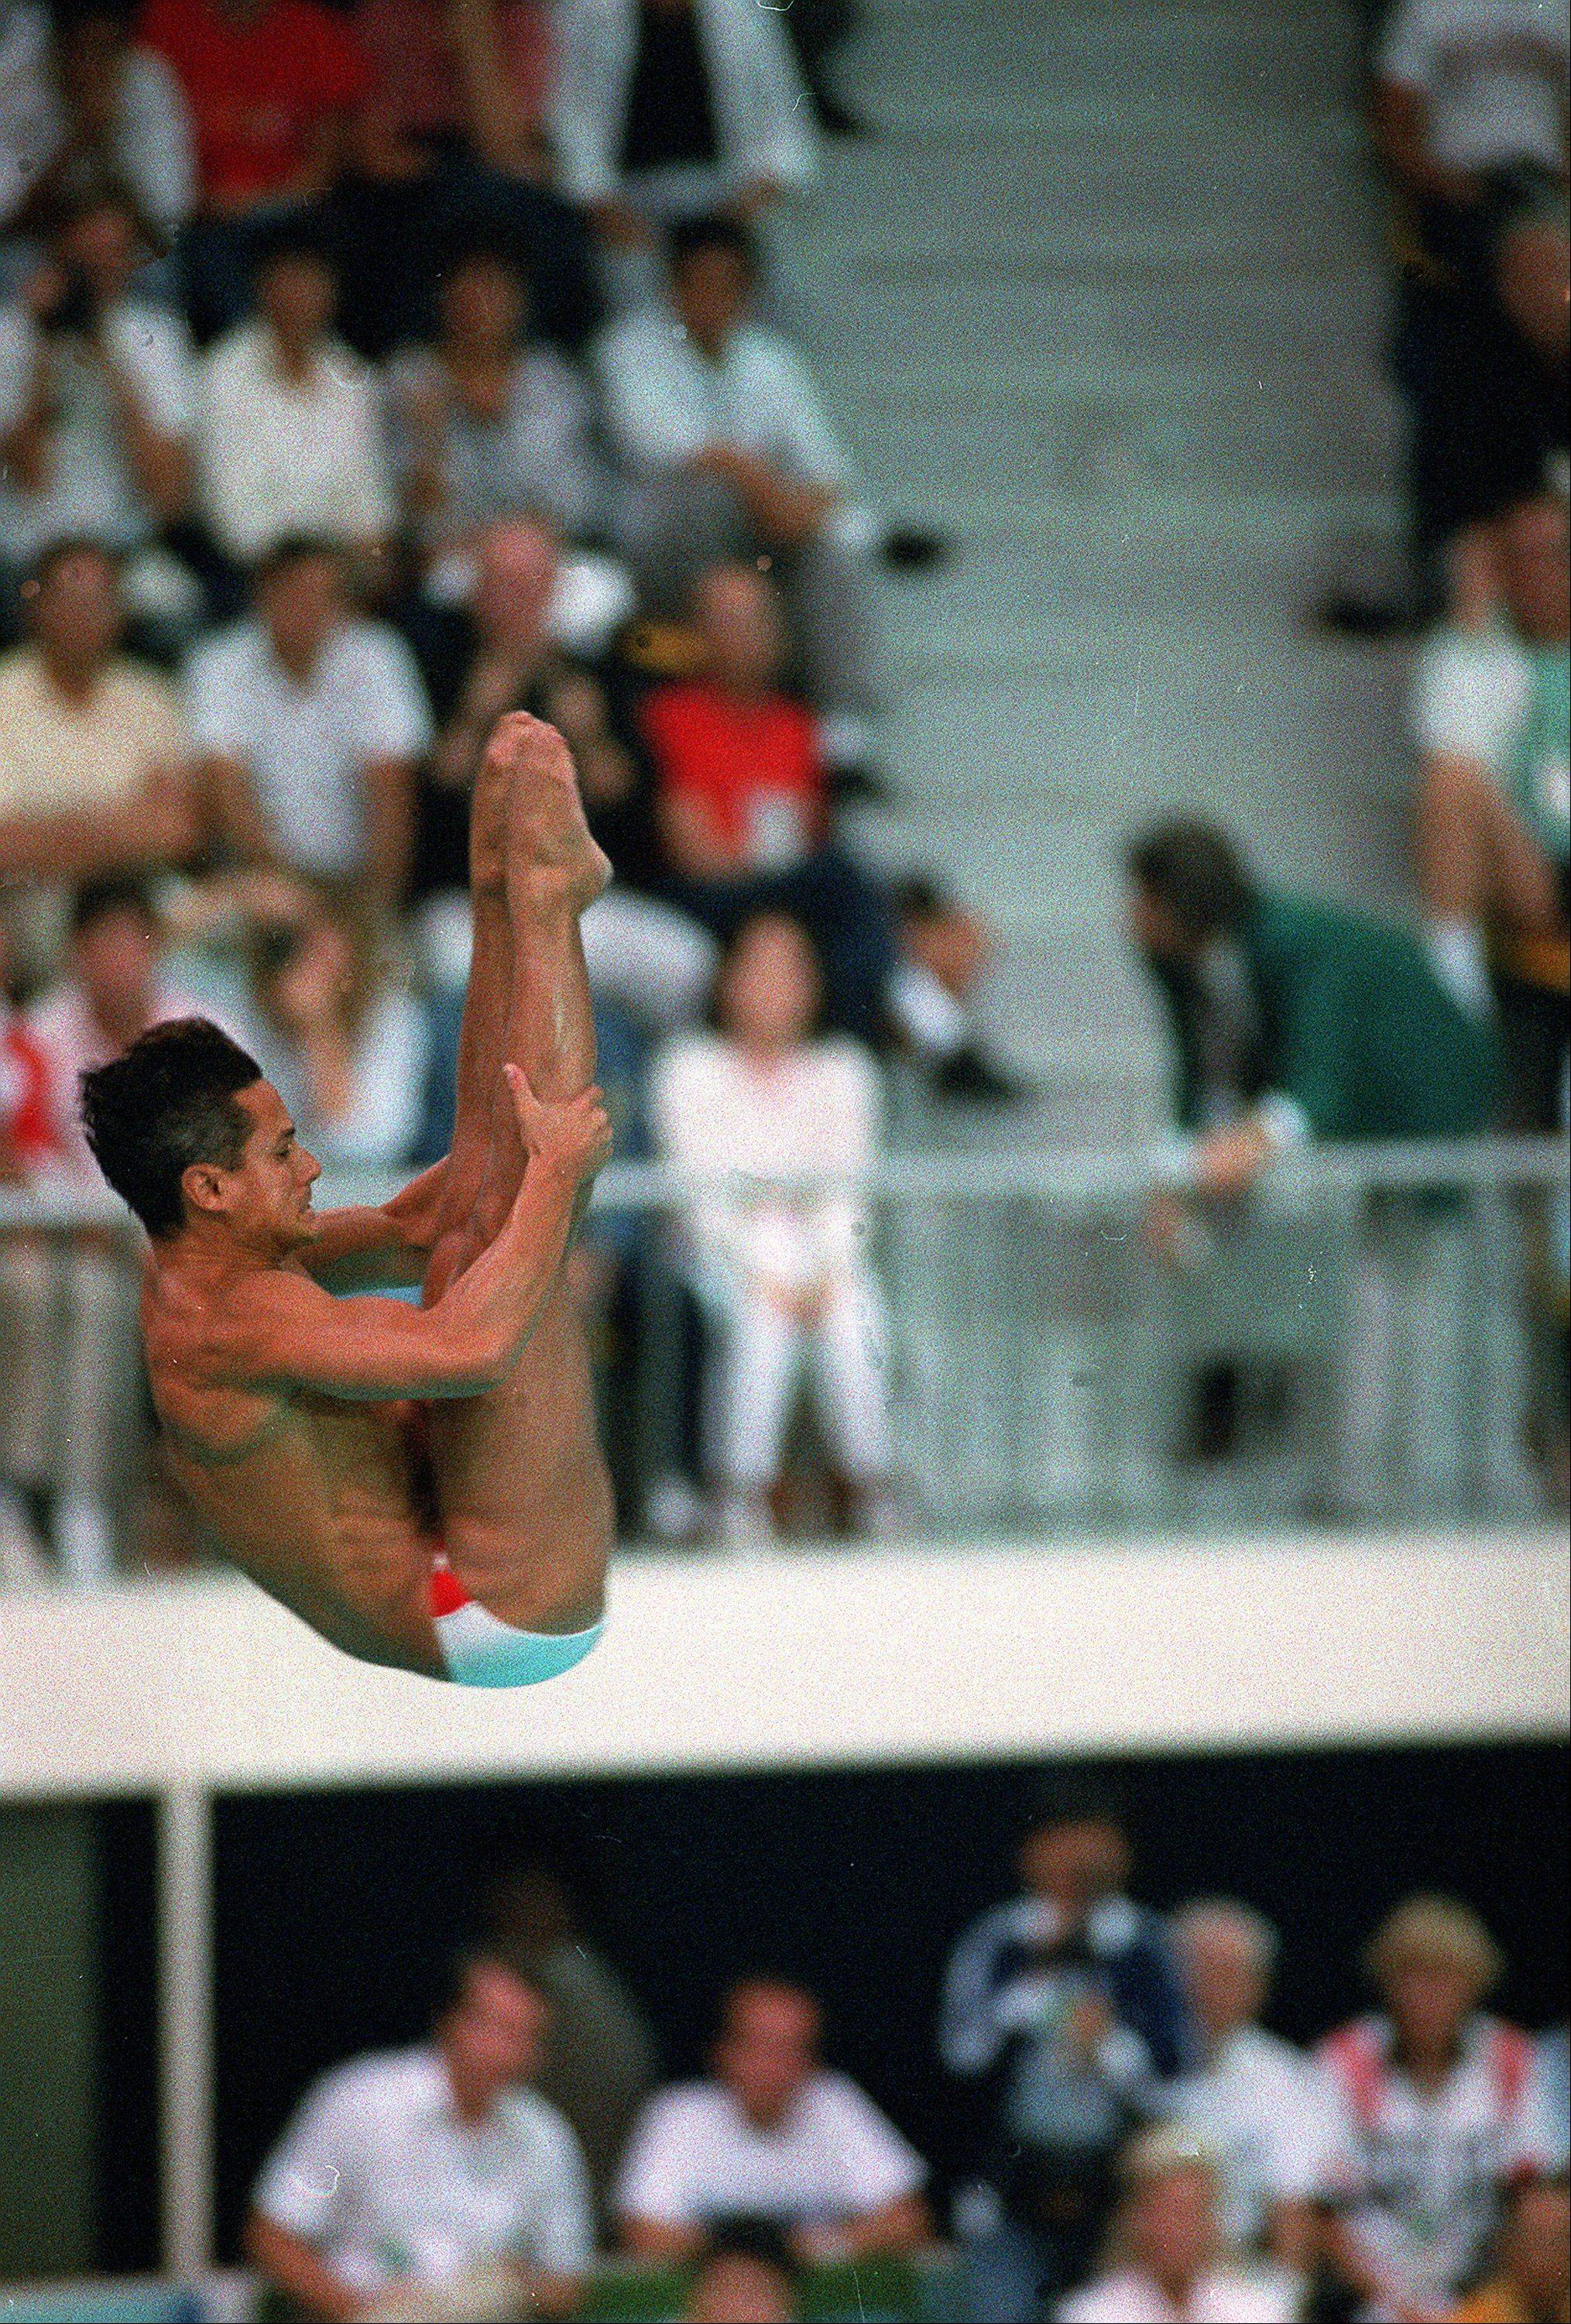 Greg Louganis performs in the men's 10-meter platform diving final competition at the XXIV Summer Olympic Games in Seoul, South Korea on Sept. 27, 1988.